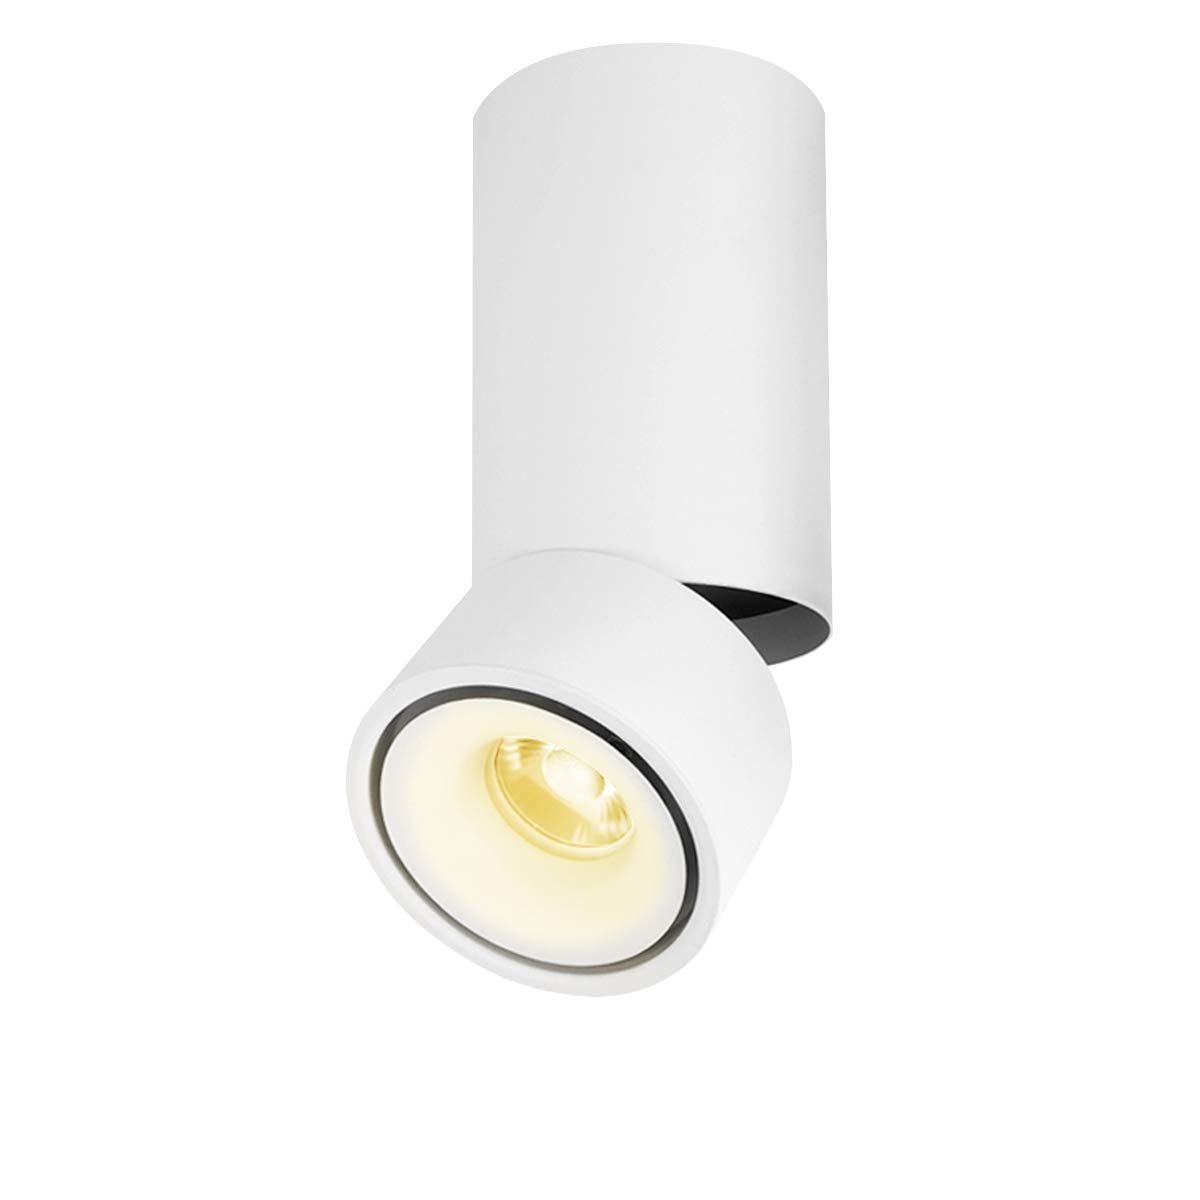 CHMPH Indoor 15W LED Spotlight Wall Light 360°Adjustable Ceiling Downlight/Surface Mounted COB Lighting LED/Warm White 3000K/ 10X20CM/Aluminum Wall Lamp or Spot Light (White-3000K)